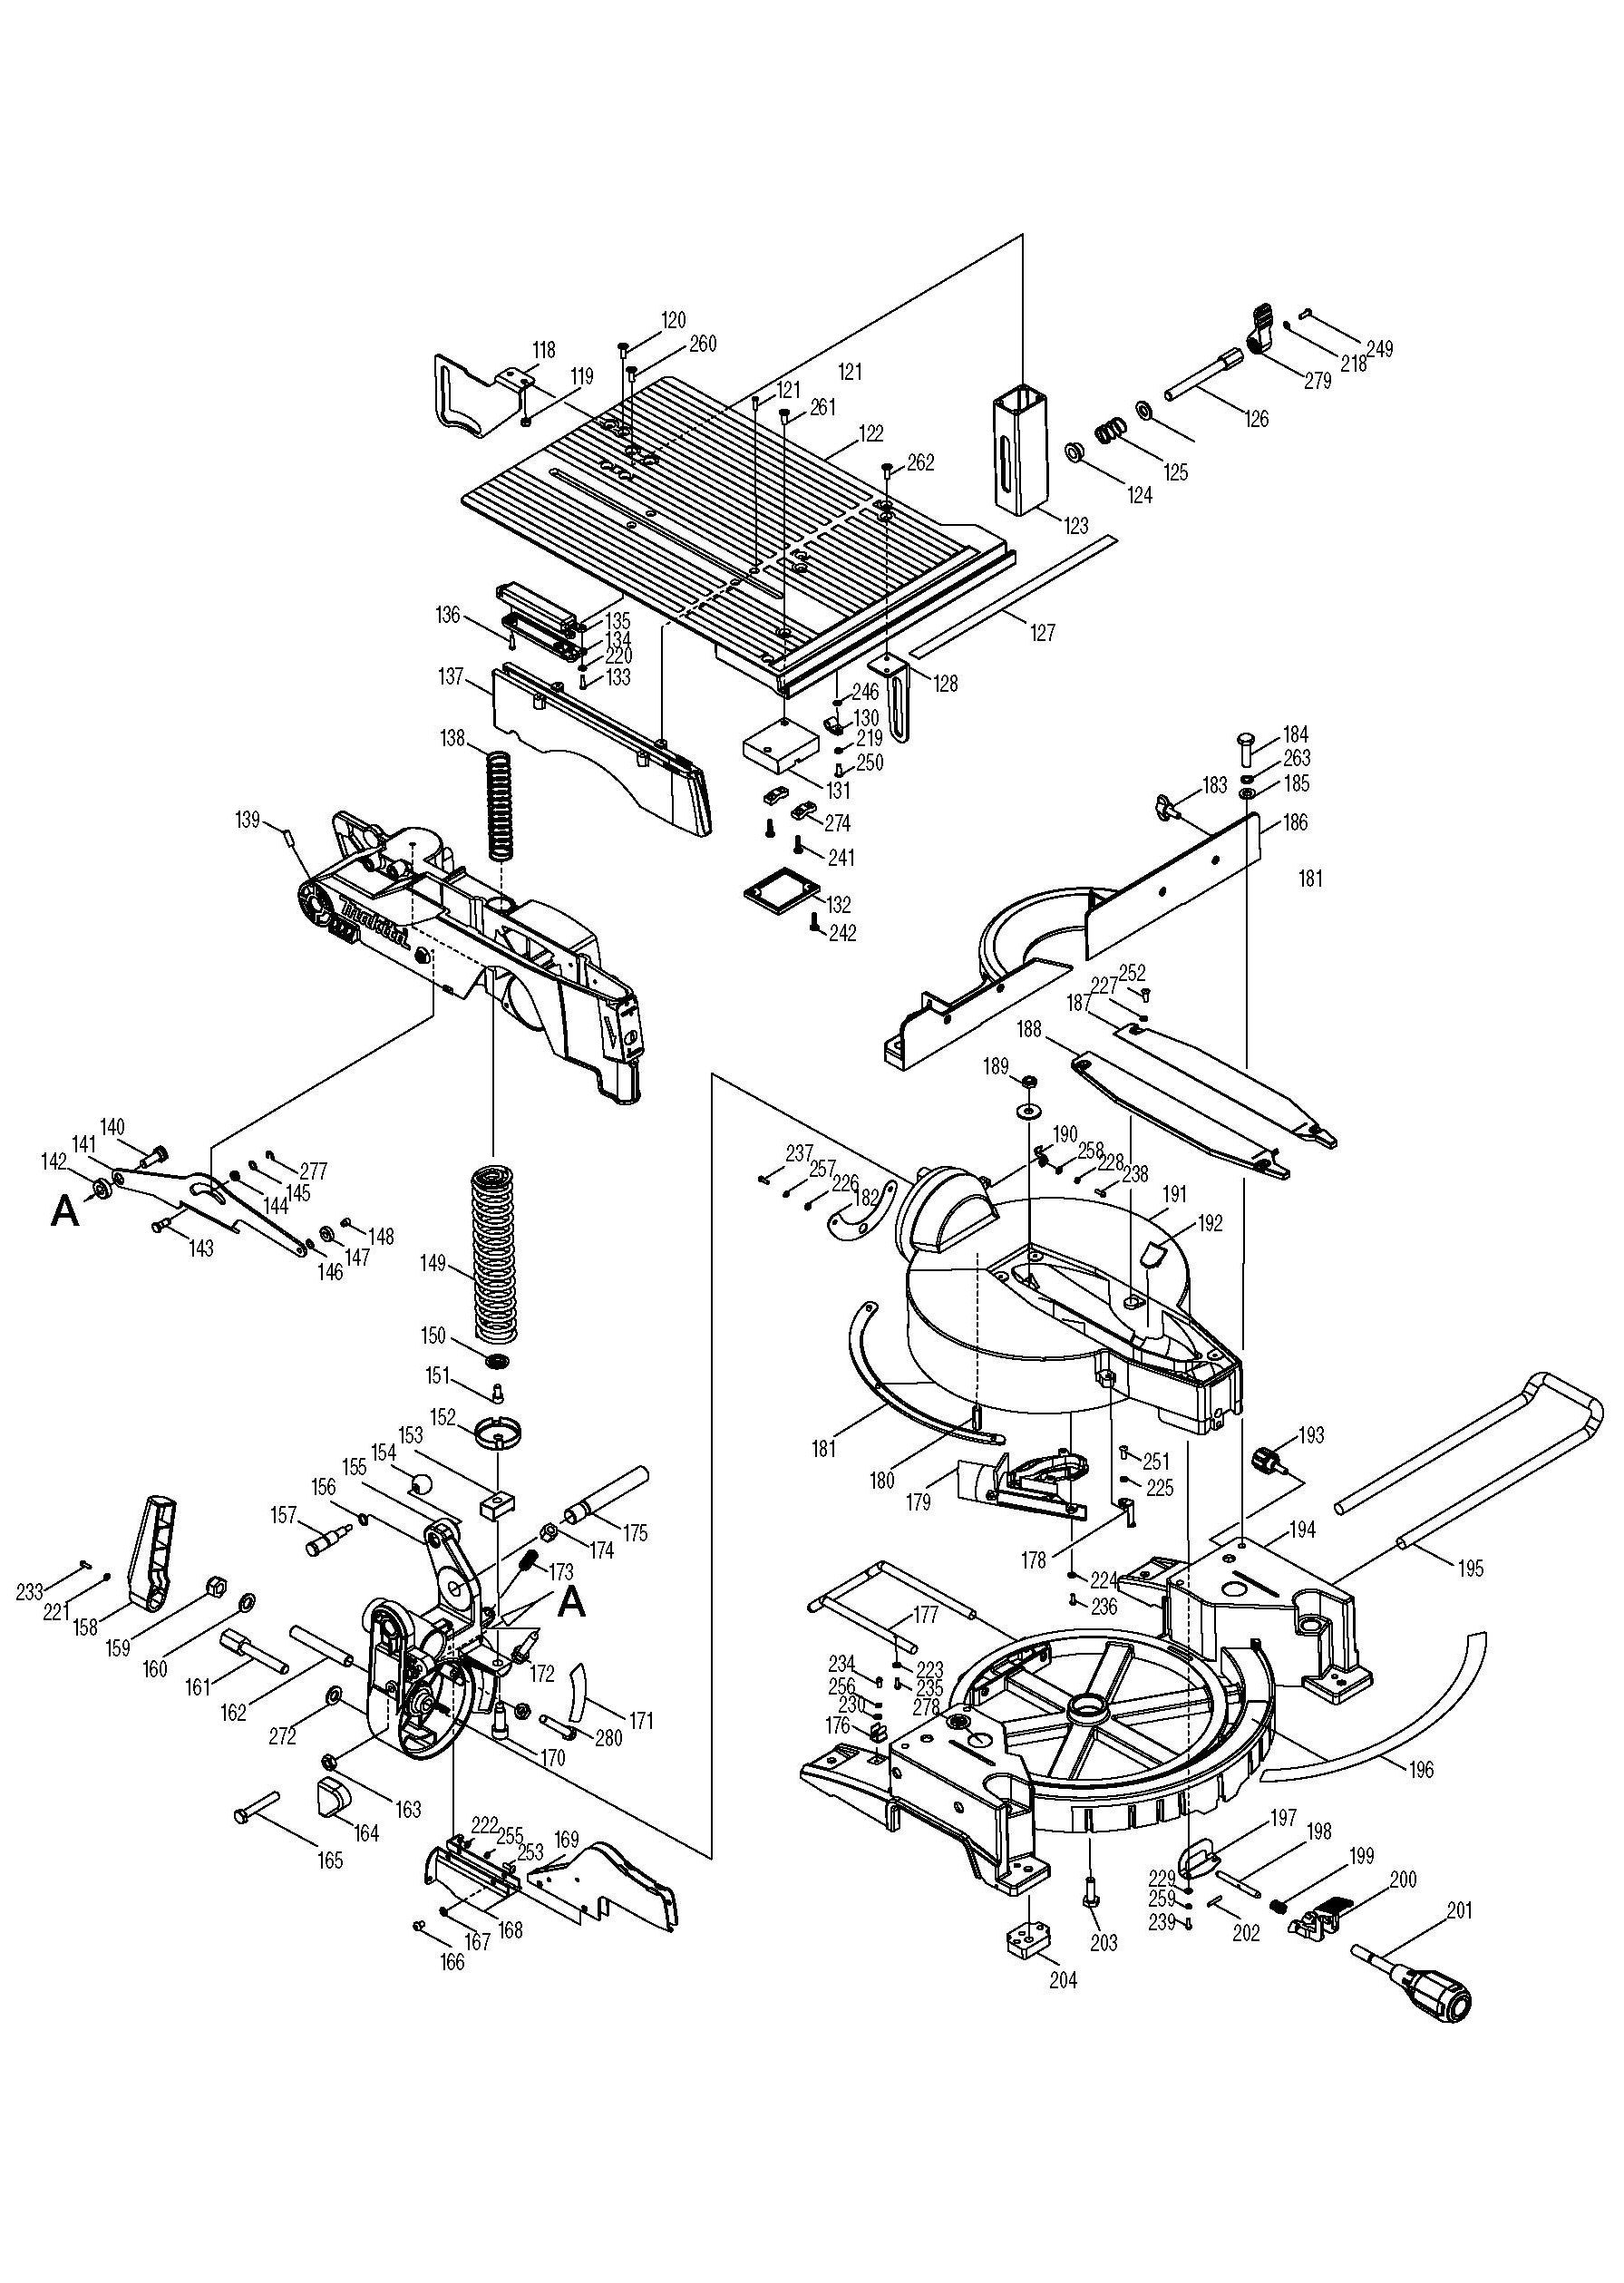 Table saw wiring diagram image harmar al600 wiring harness makita table saw wiring diagram image collections wiring table lh1200fl ww 02 makita table saw wiring greentooth Choice Image